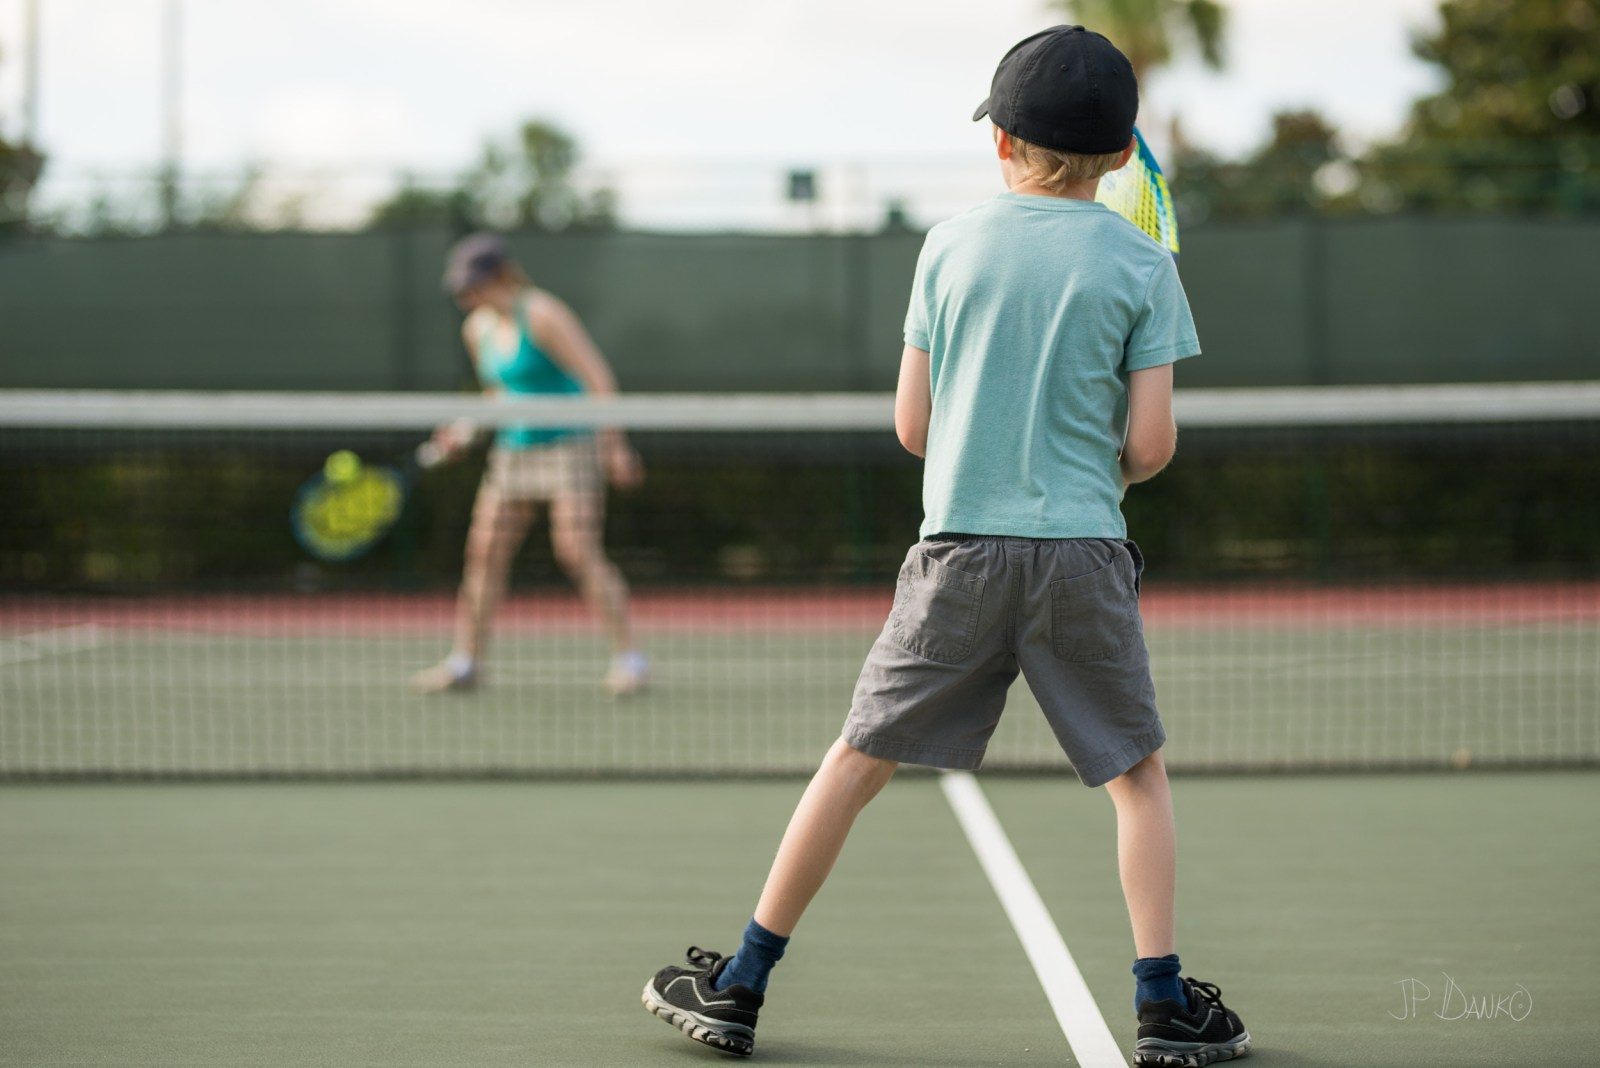 Mom in tank top returns ball to son playing tennis on summer Florida vacation